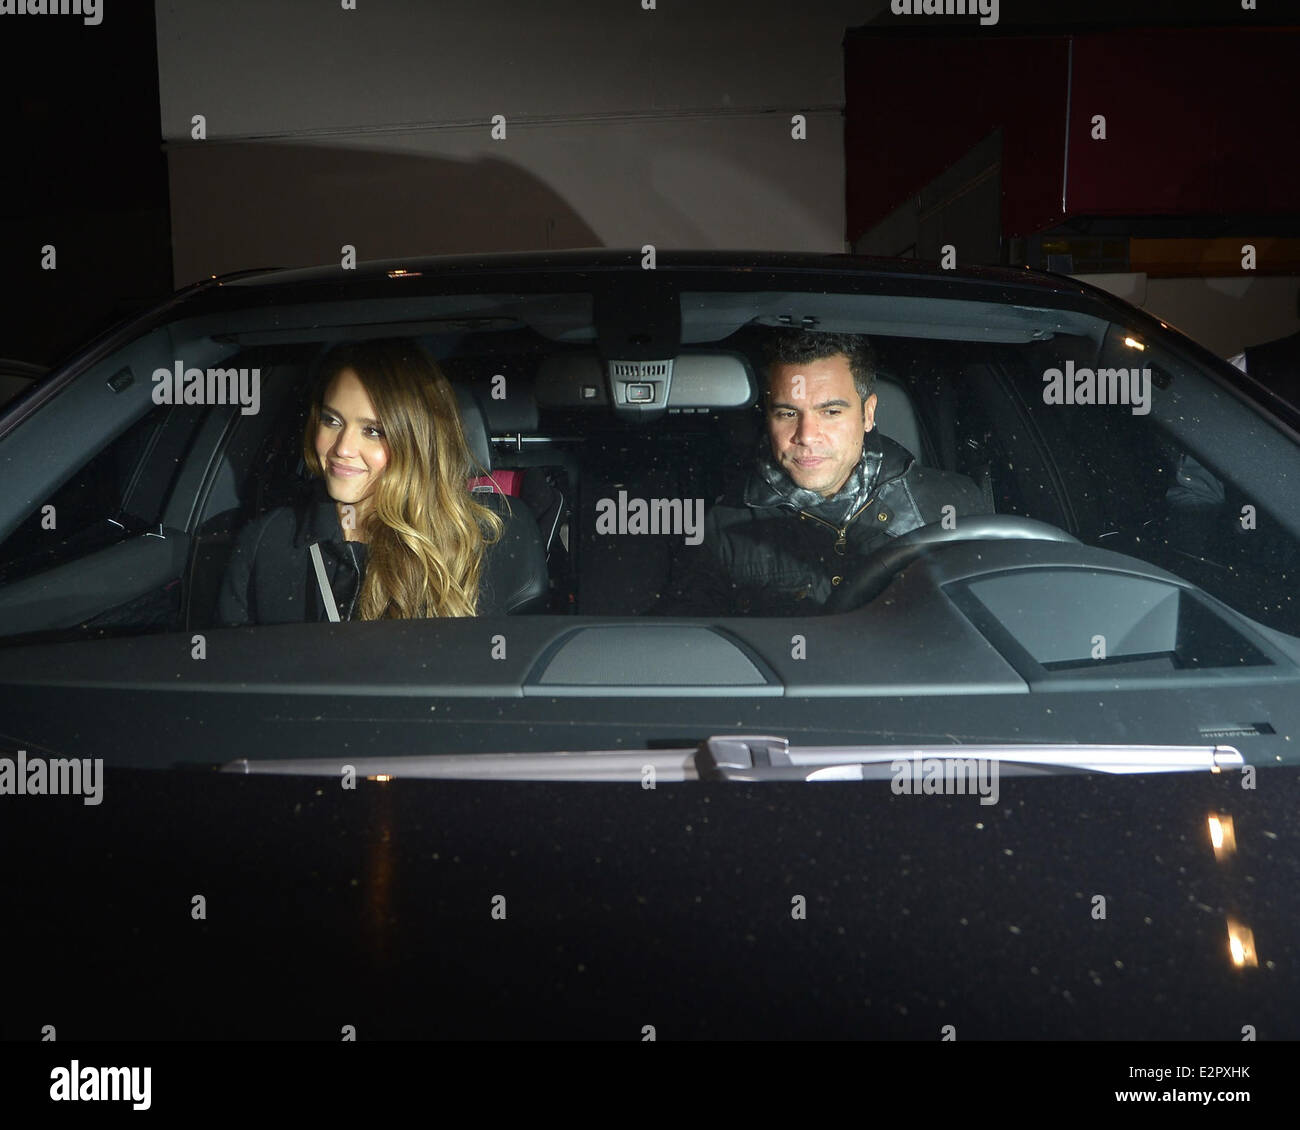 Jessica Alba And Cash Warren Get Into Their Car After Dining At